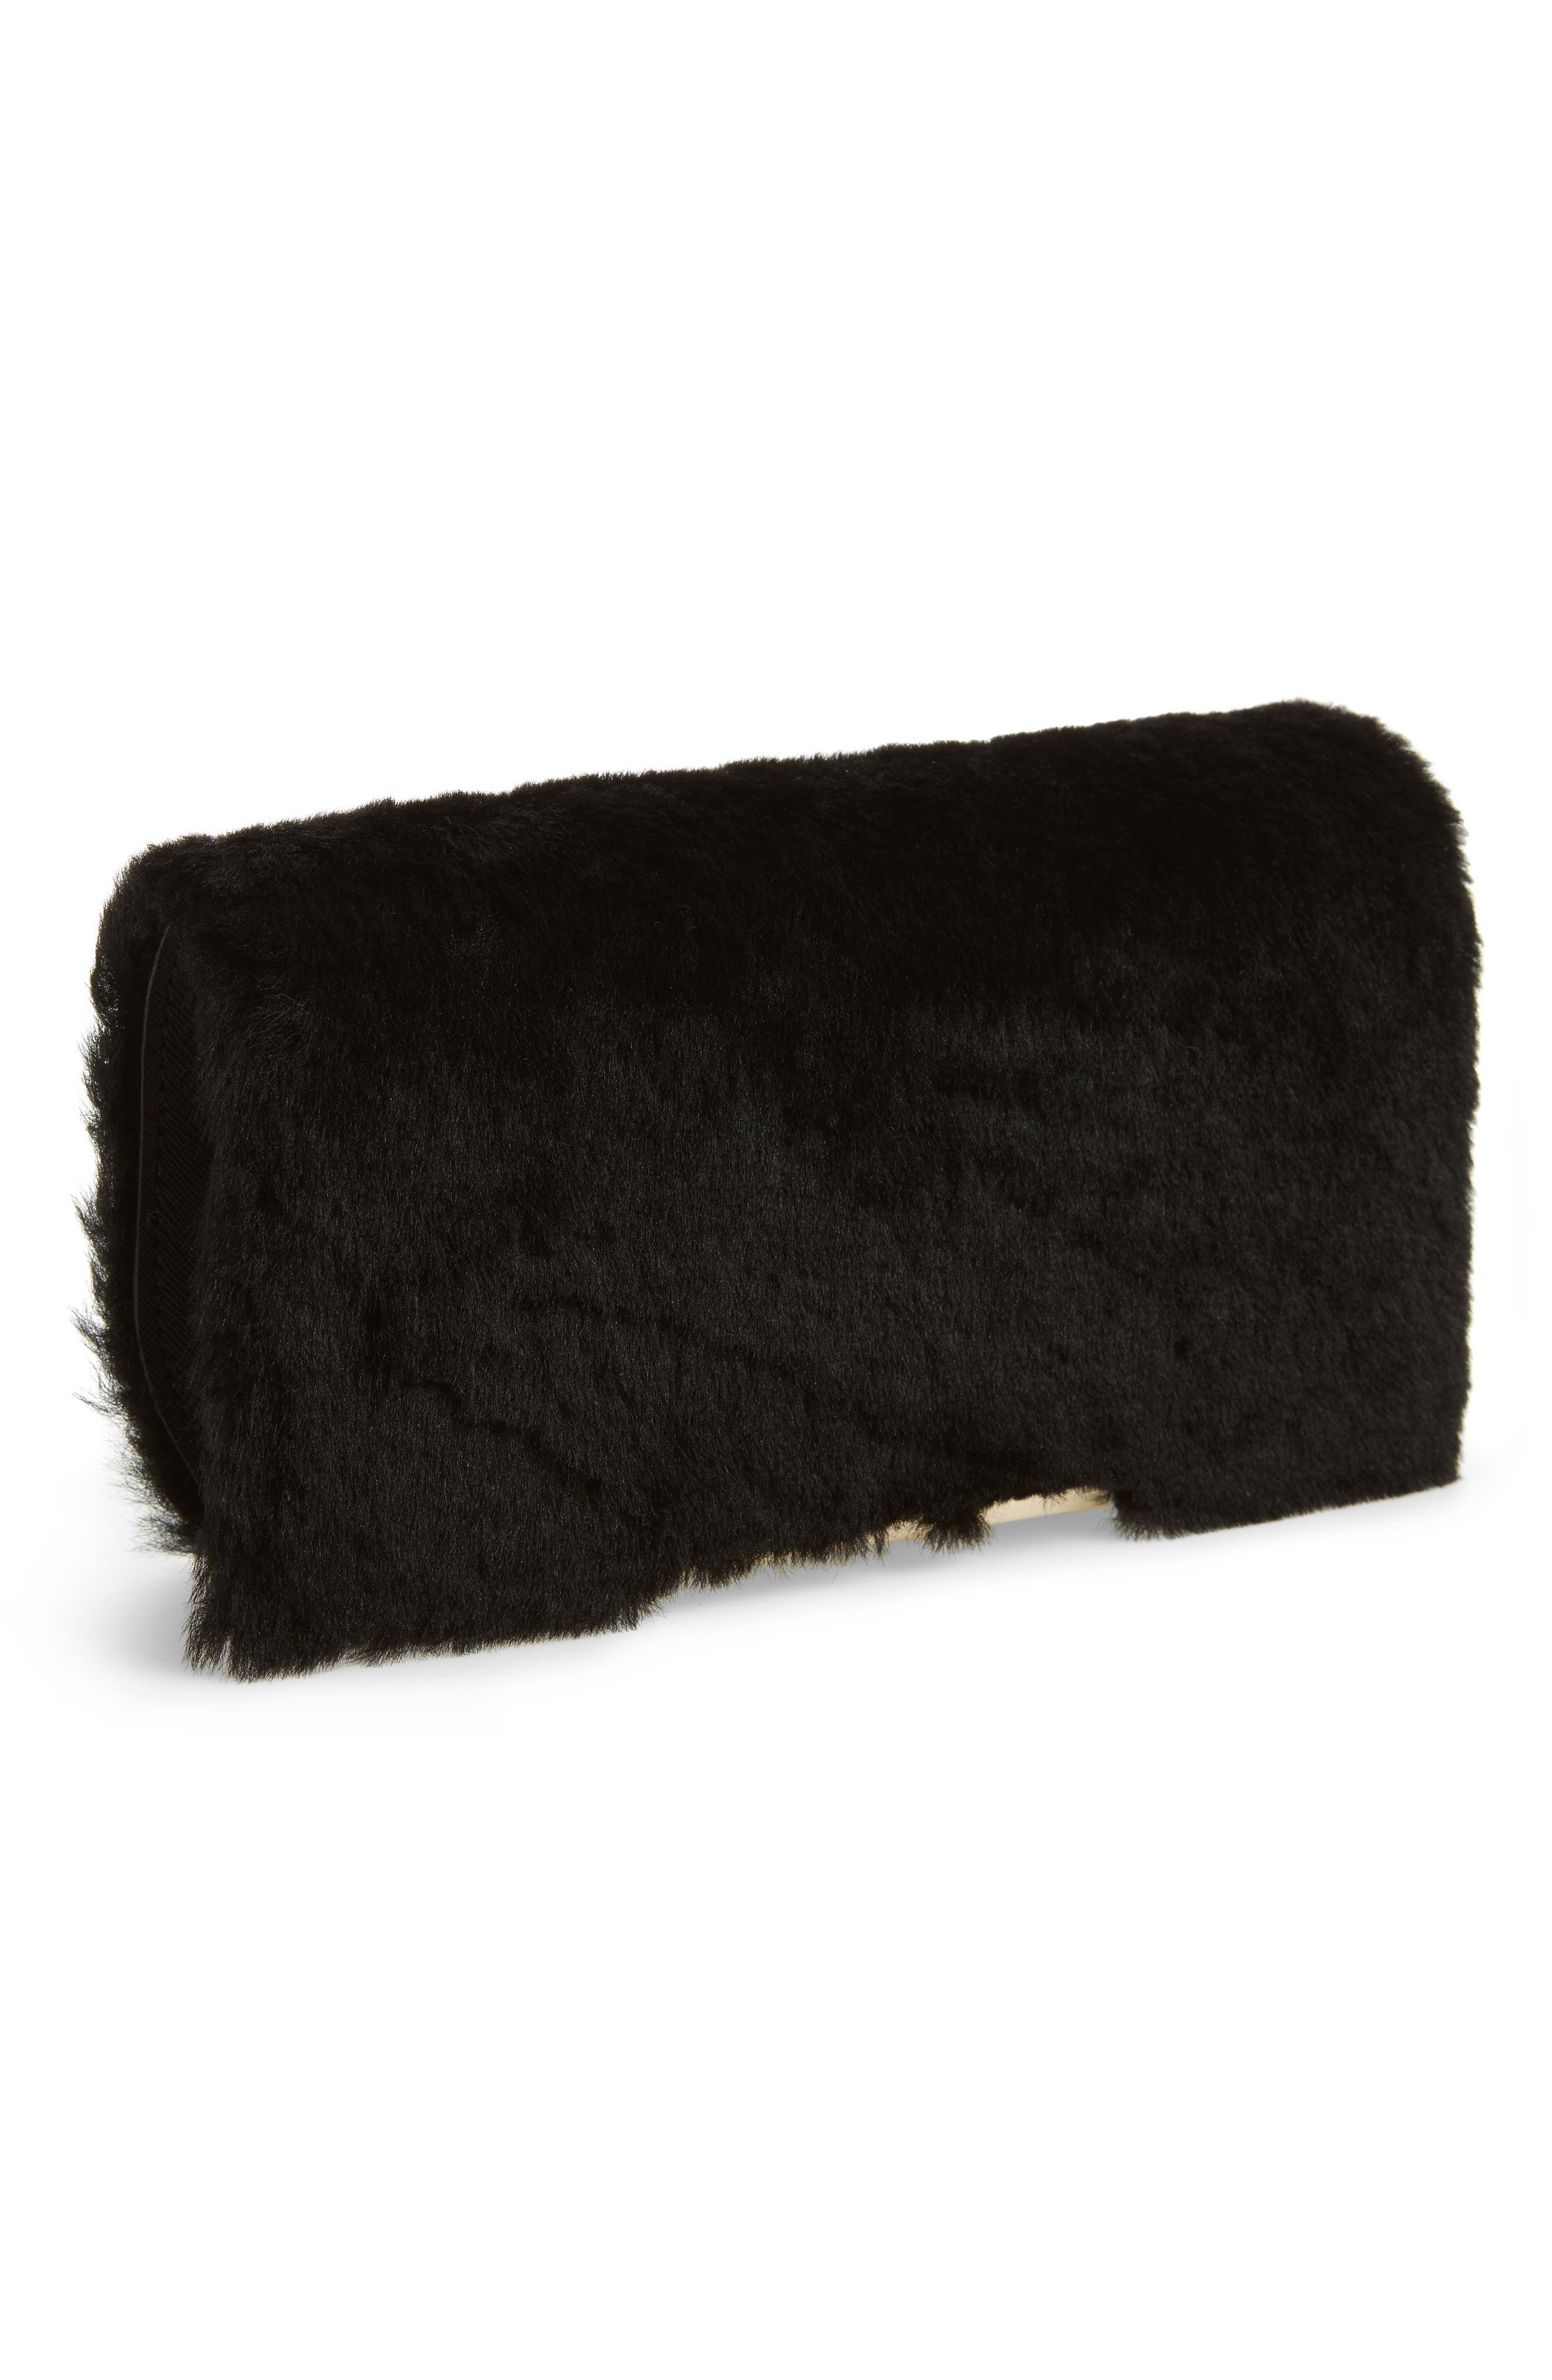 kate spade new york make it mine genuine shearling snap-on accent flap